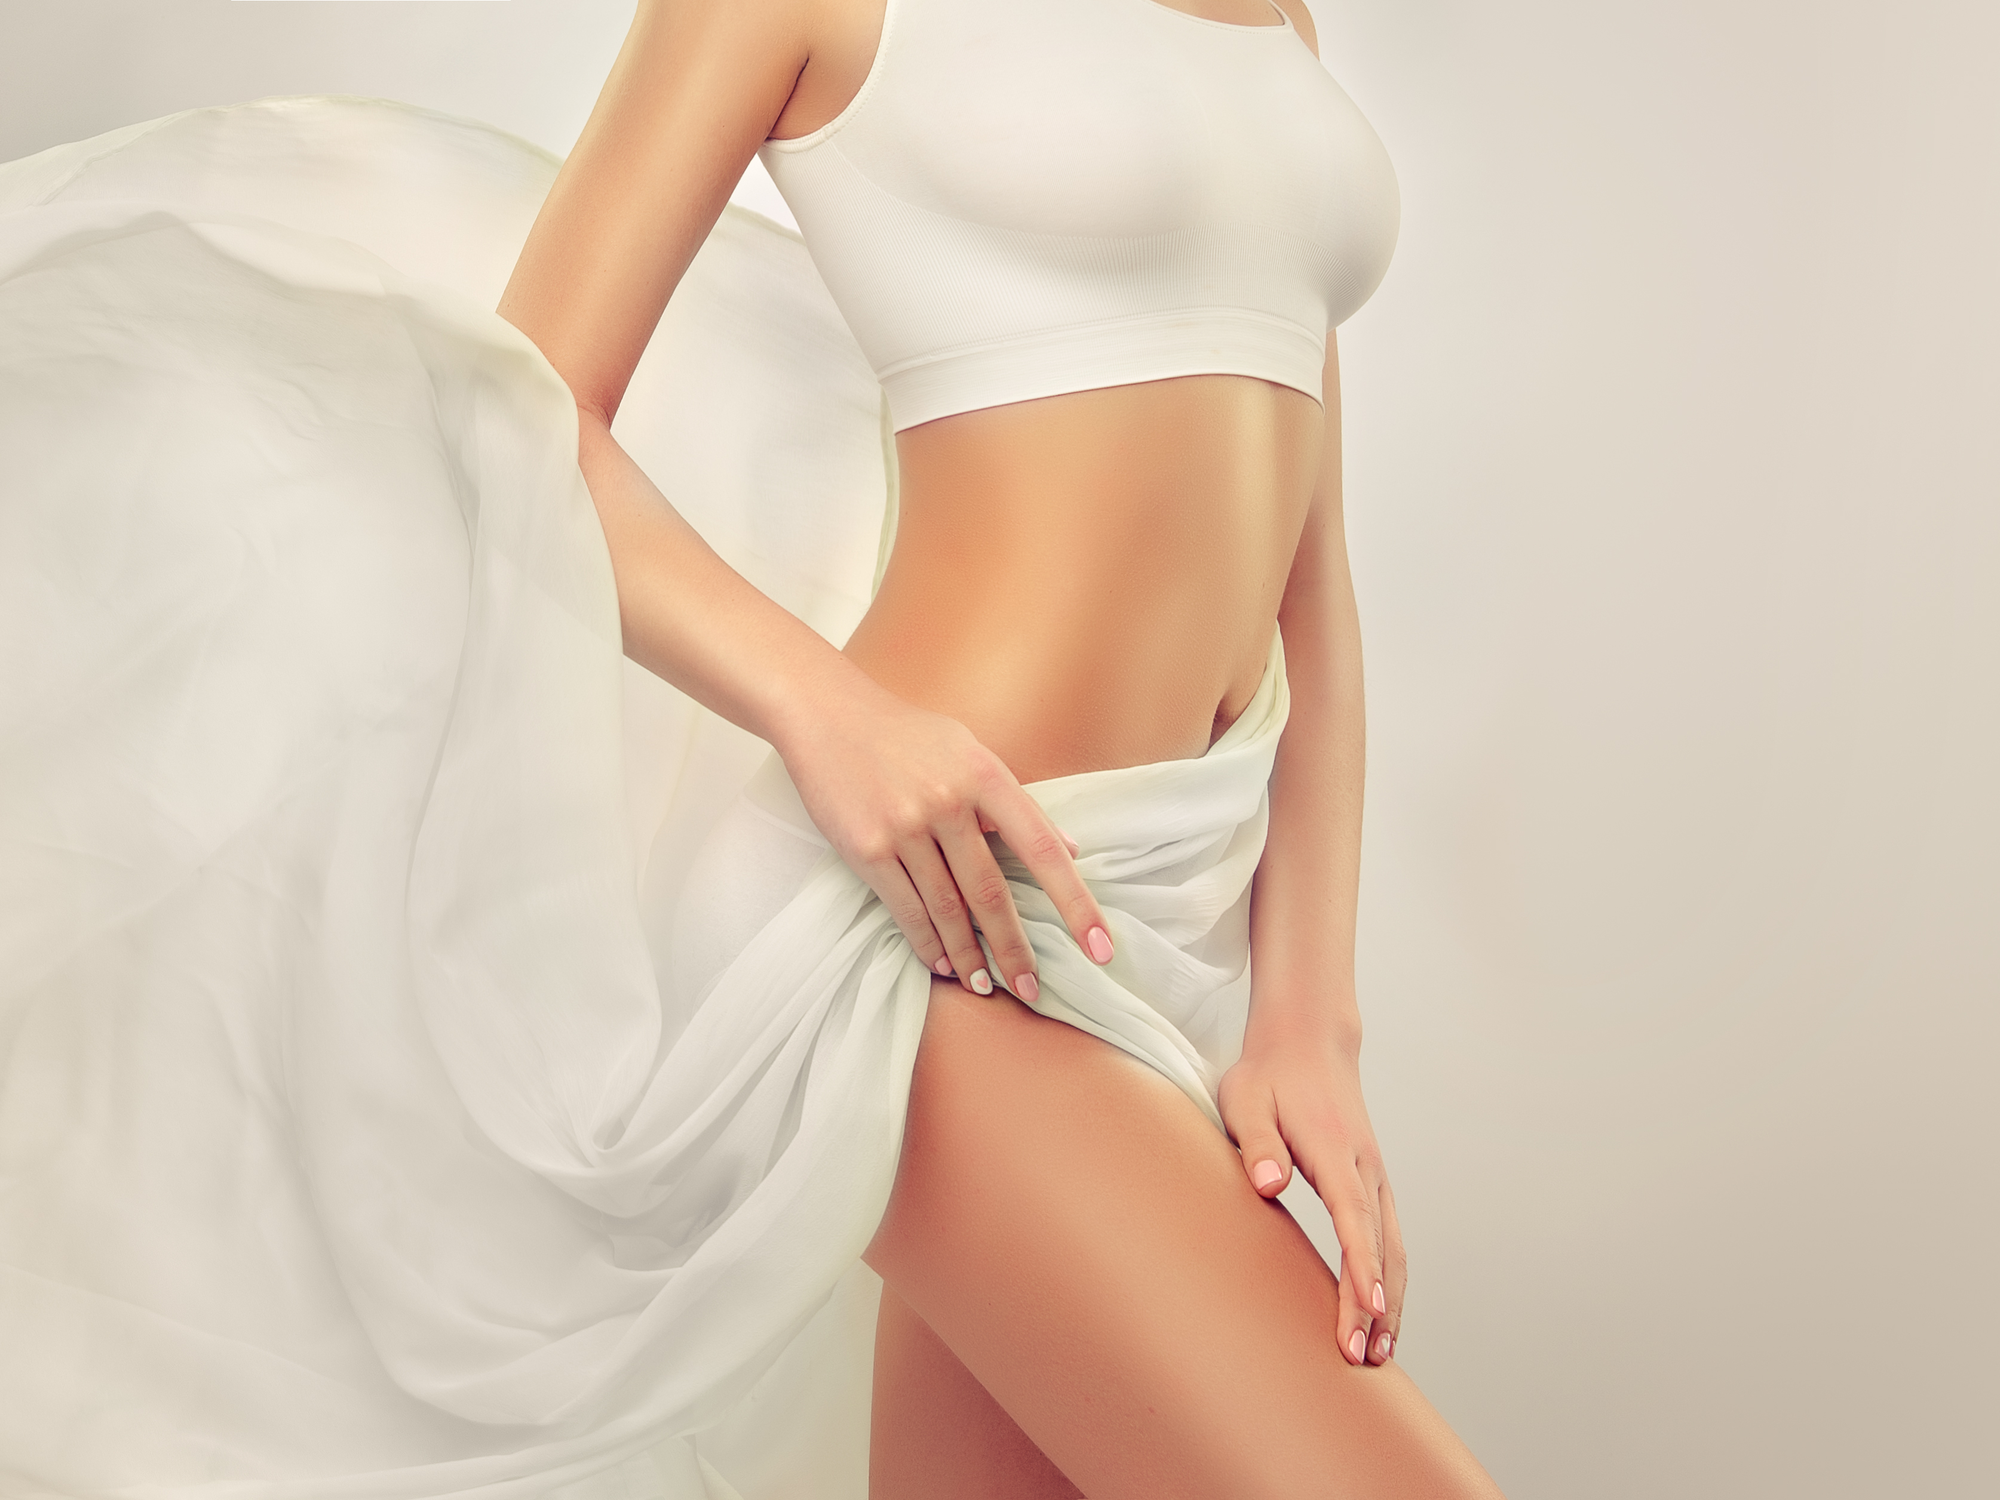 Slim, Toned, Young Woman